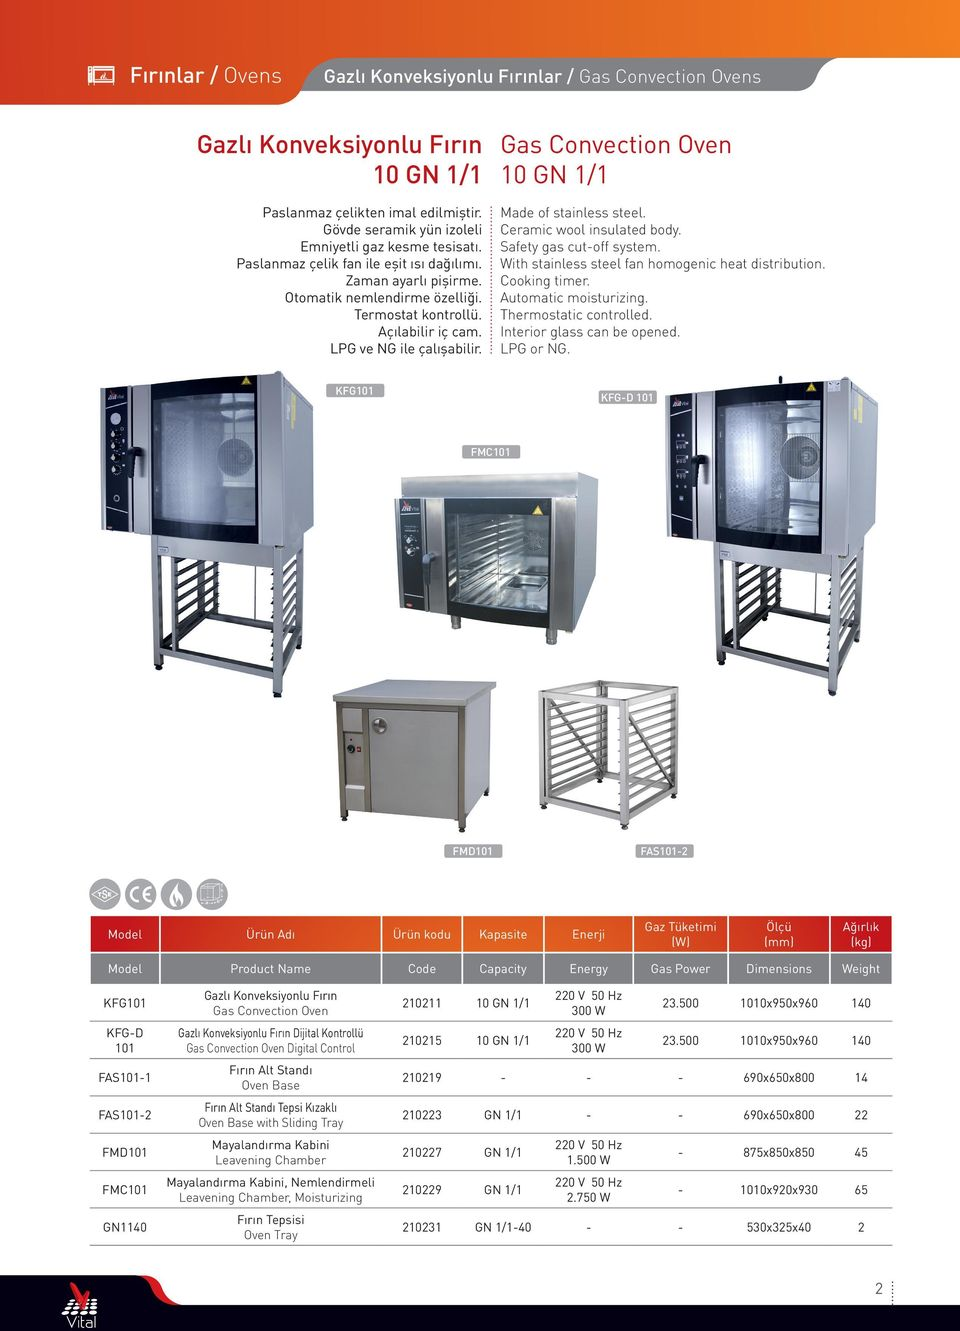 Safety gas cutoff system. With stainless steel fan homogenic heat distribution. Cooking timer. Automatic moisturizing. Interior glass can be opened. LPG or NG.